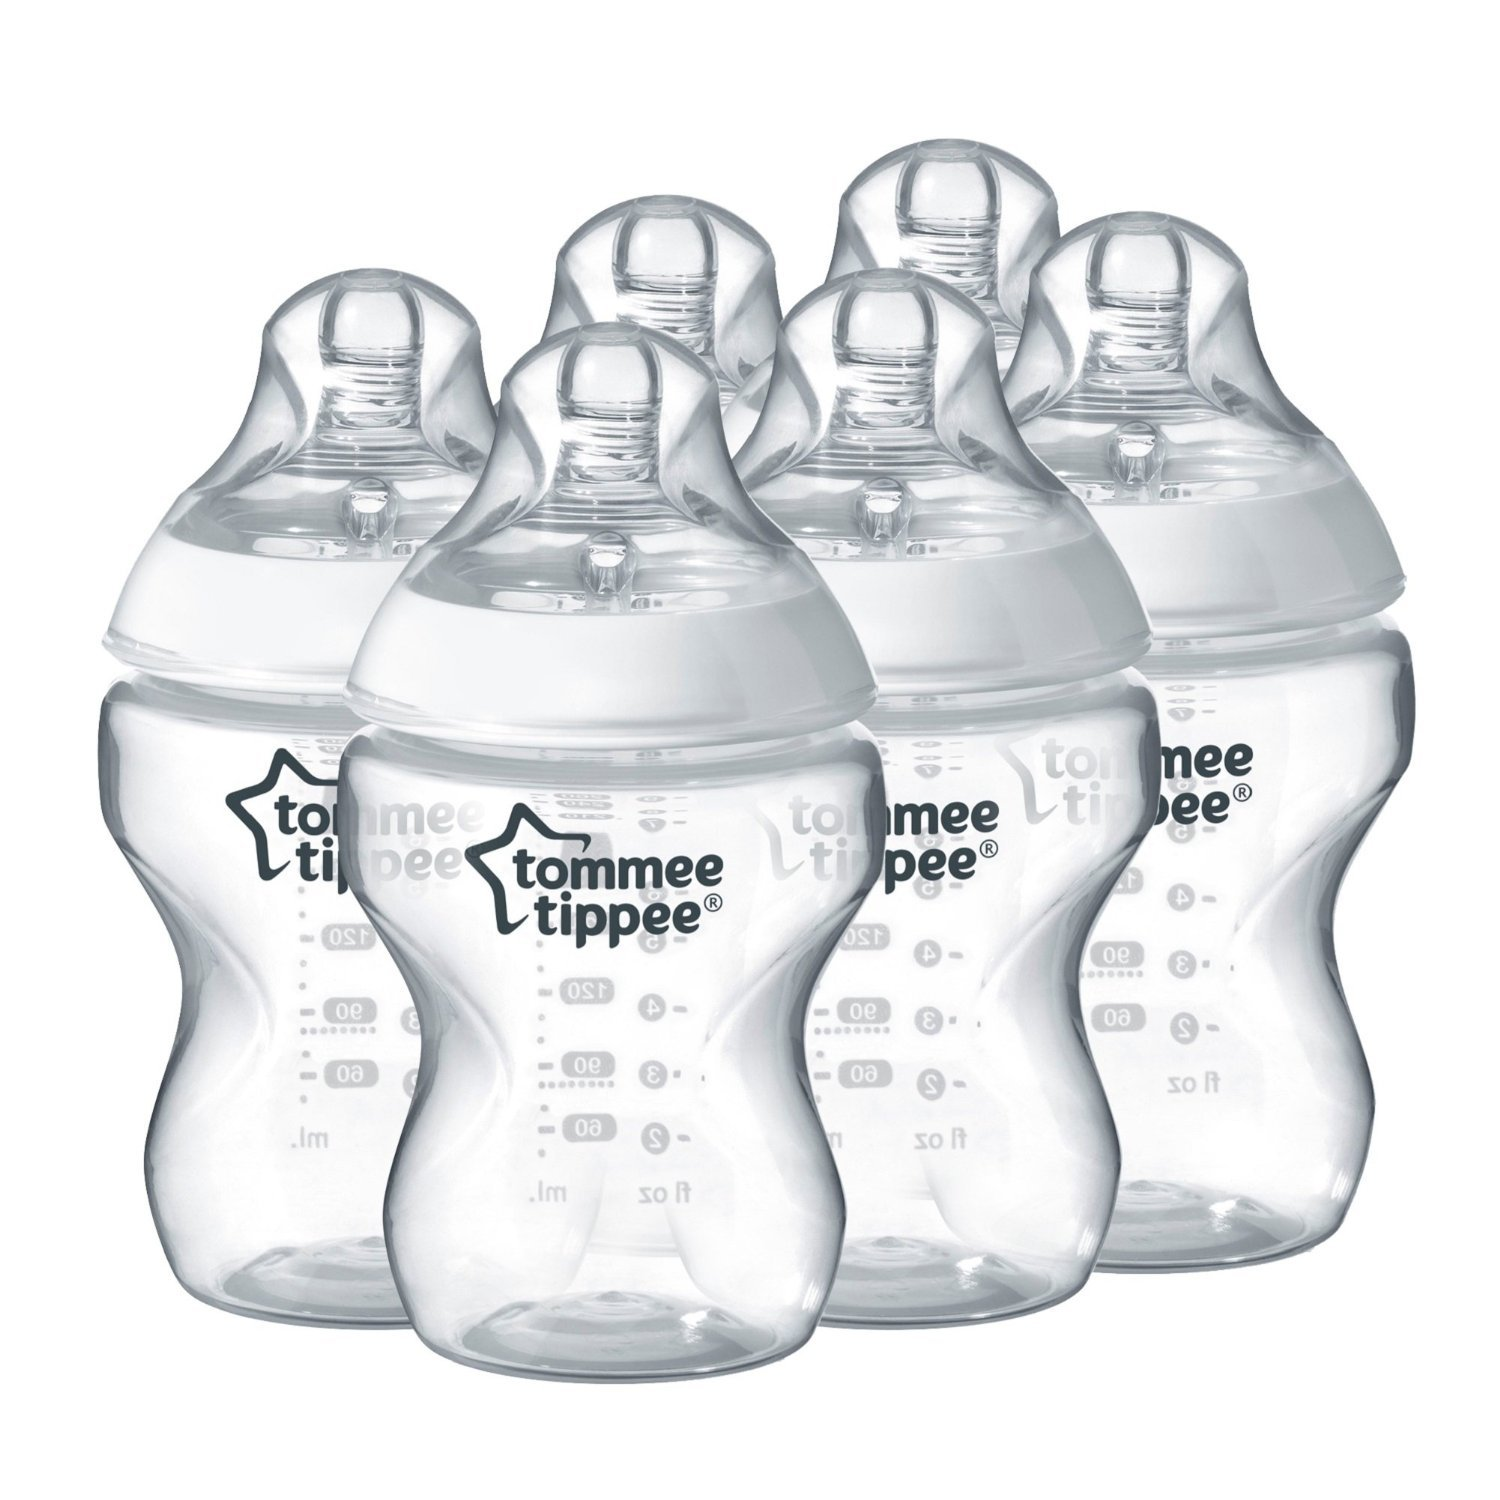 Tommee Tippee Closer to Nature Feeding Bottles - Pack of 6 - My Mom's best